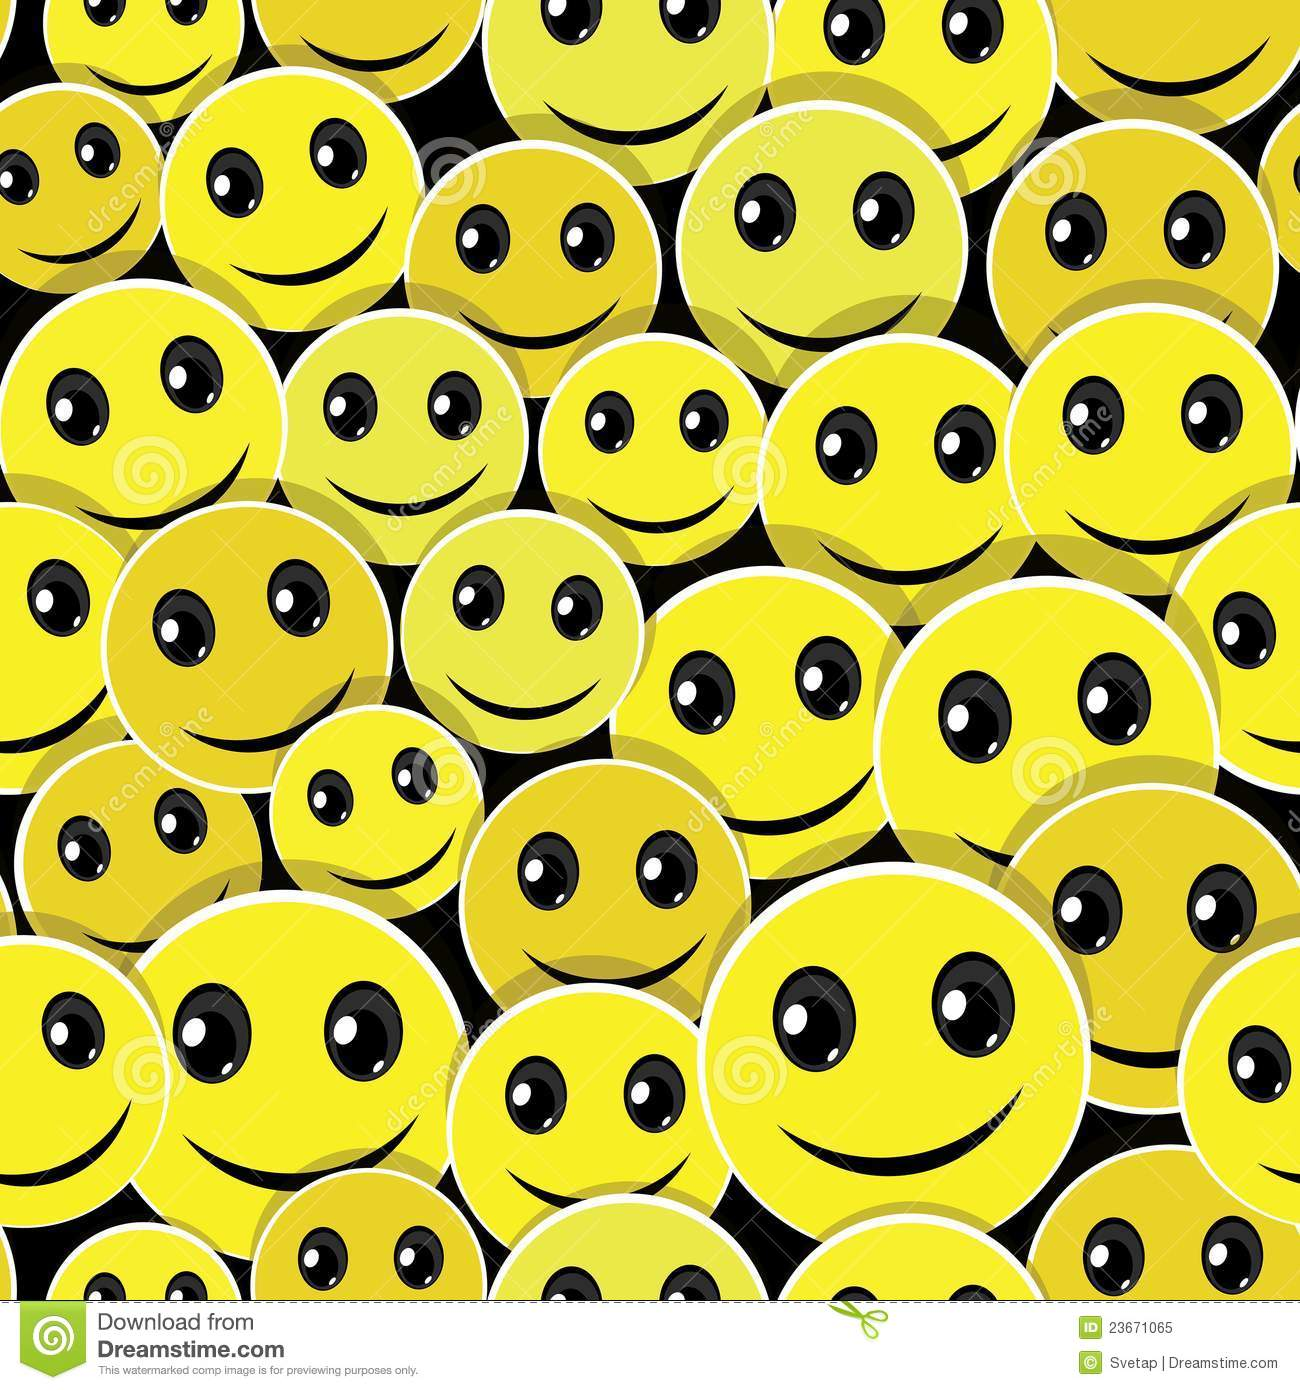 Smiley Faces With Glasses  David SimchiLevi